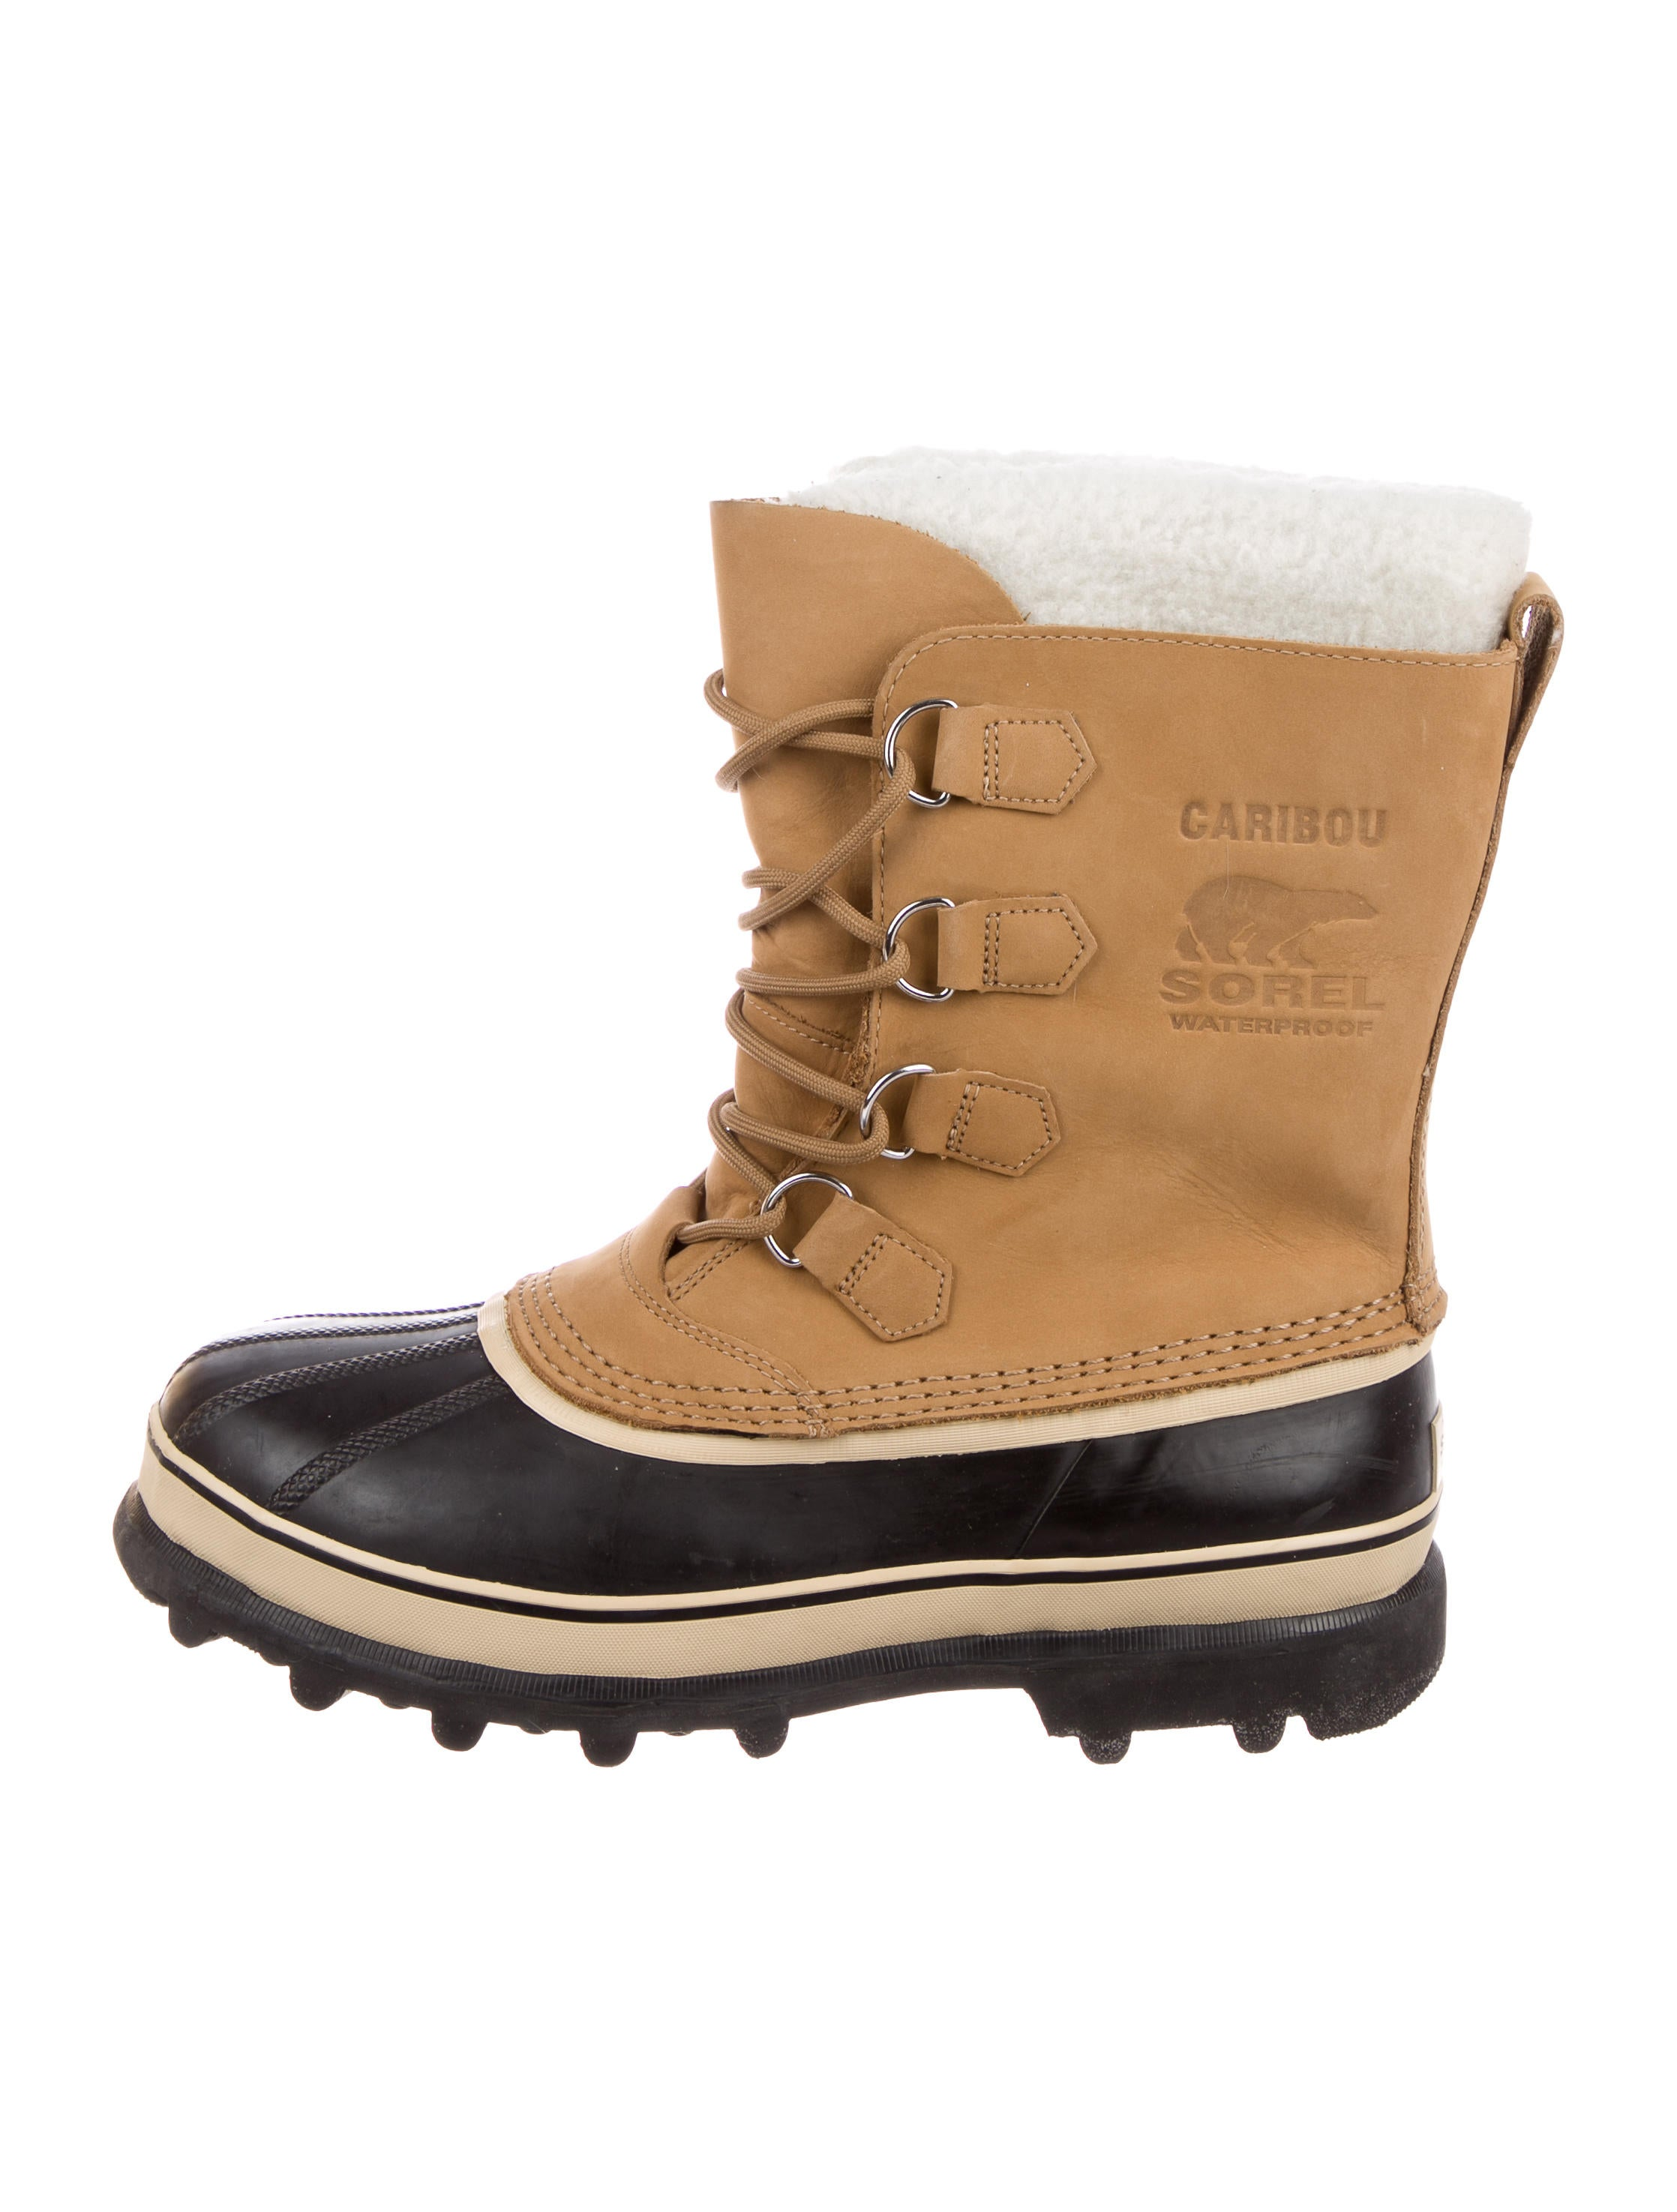 Sorel Caribou Leather Mid-Calf Boots reliable cheap online best prices for sale 2014 newest pAATE4rp